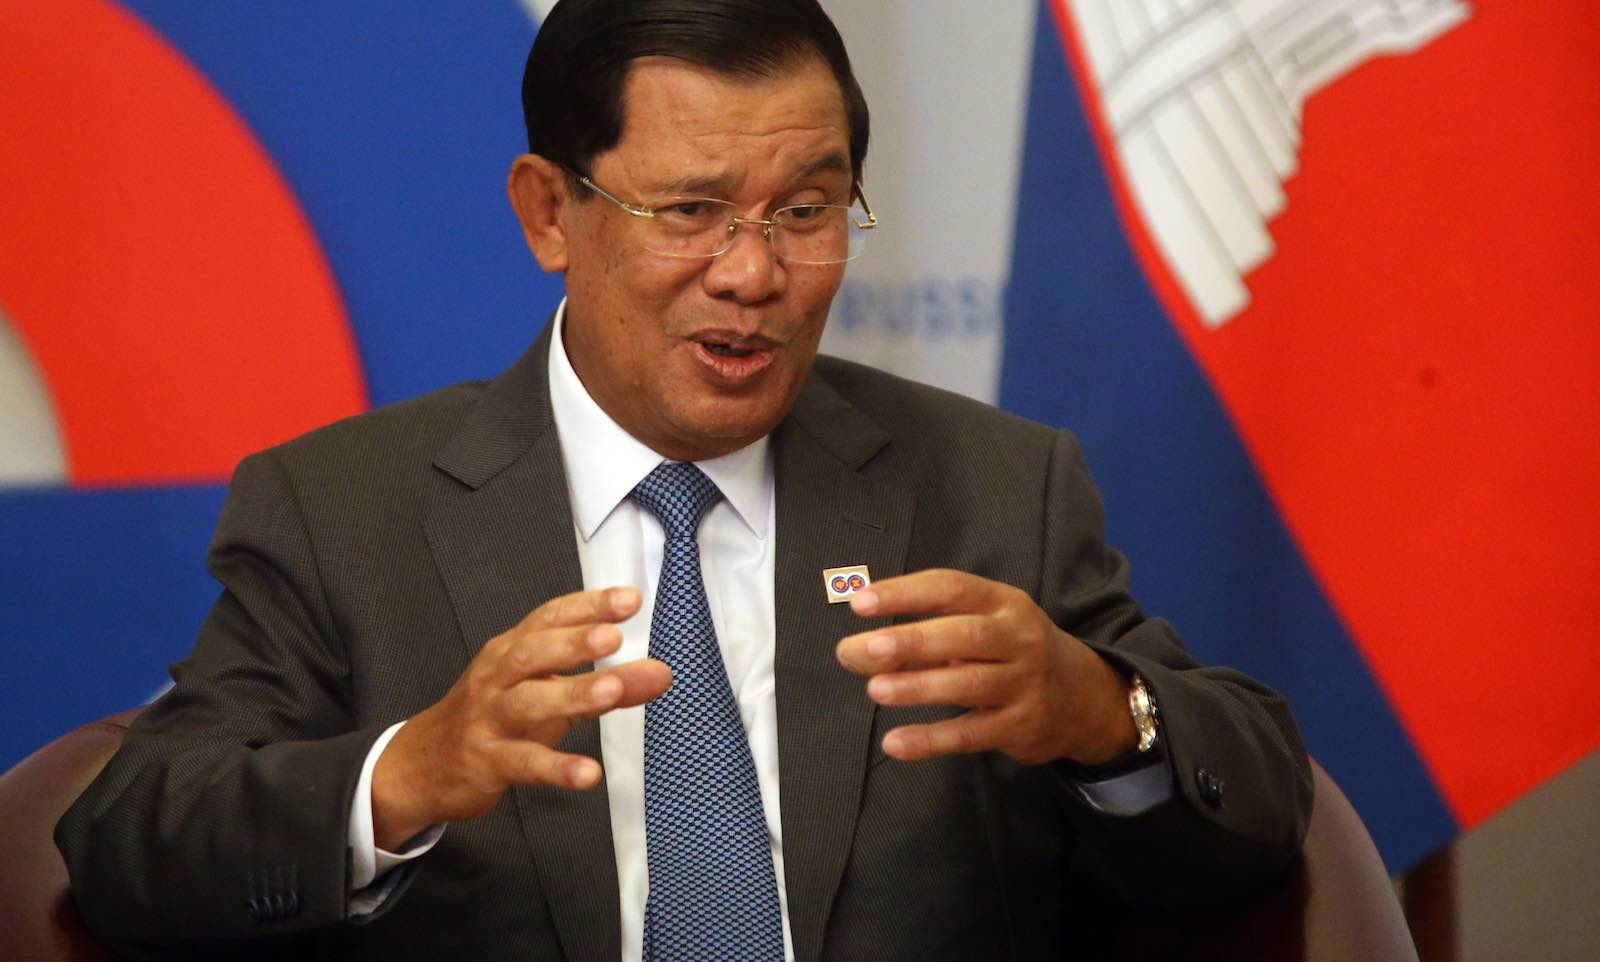 Cambodian Prime Minister Hun Sen (Photo: Mikhail Svetlov/Getty)